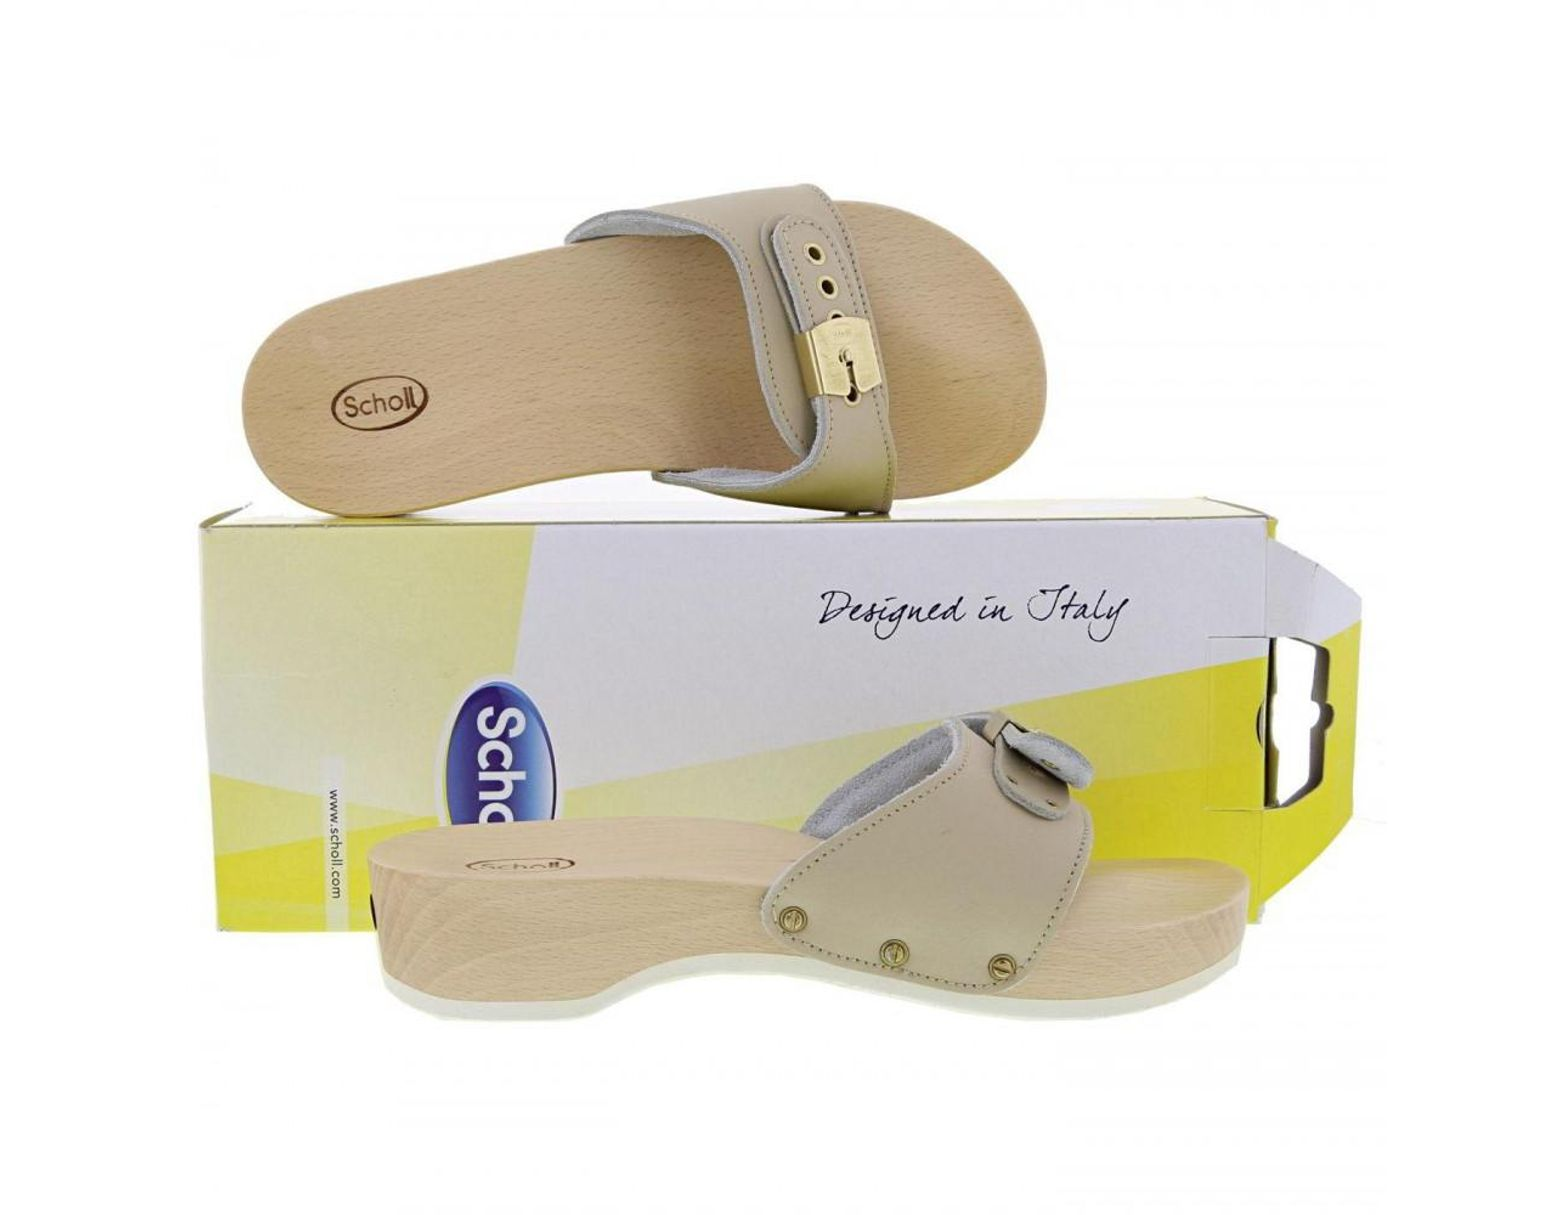 Natural Lyst Heel Slide Clogs Sandals In Scholl Pescura Wooden DYEH29eWI